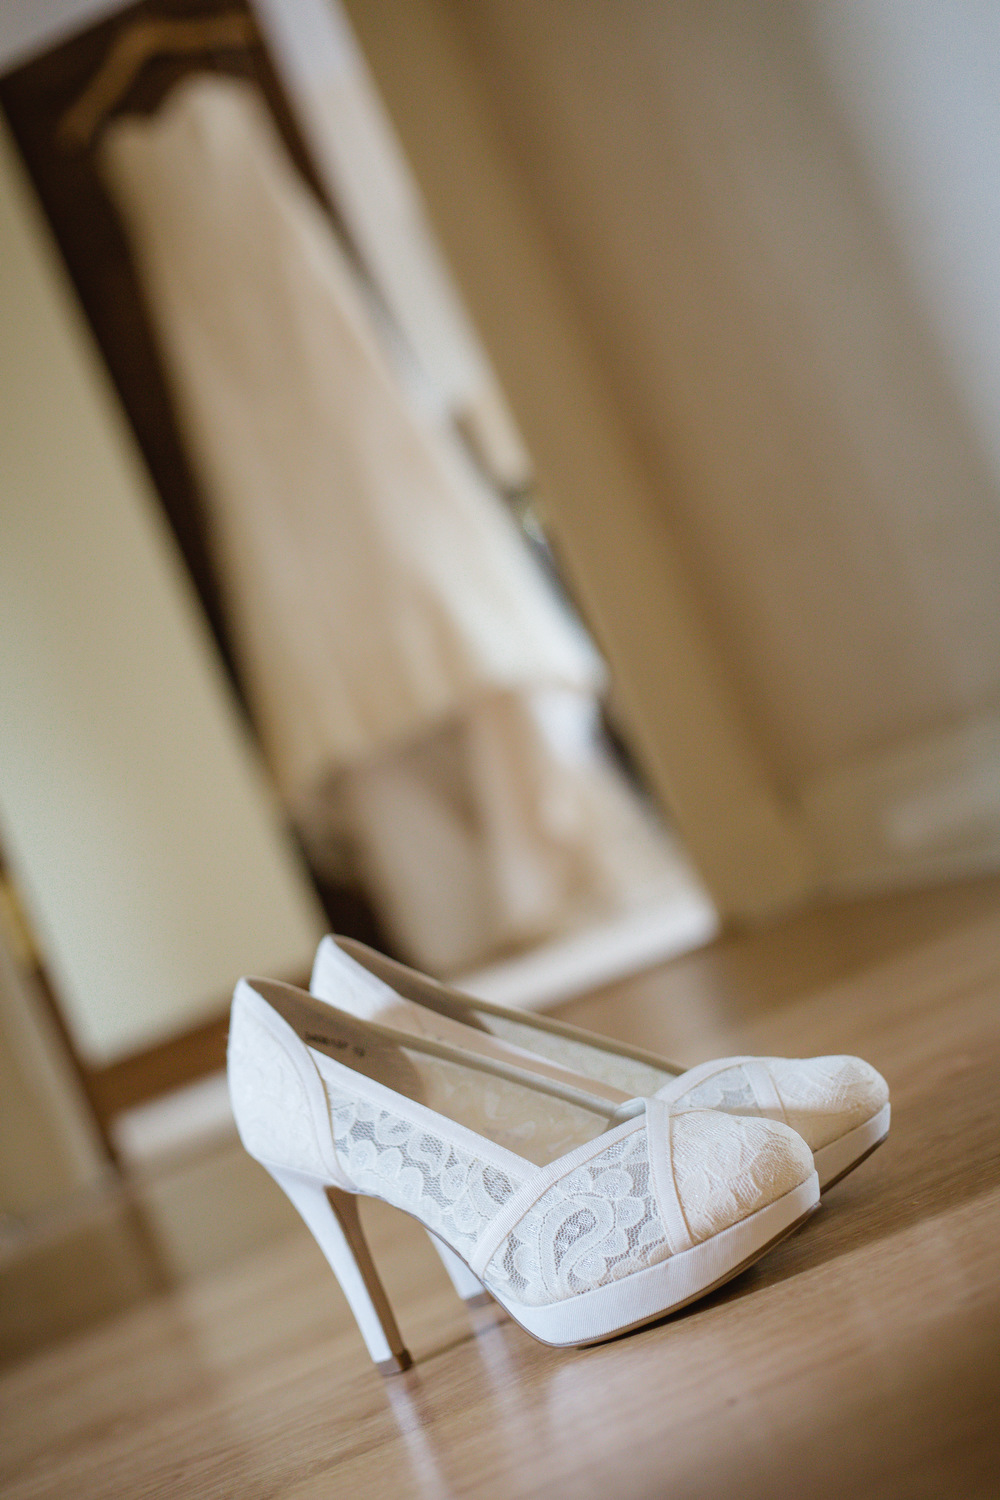 charnwood_weddings_halstead_house_Anita_Ben3.JPG